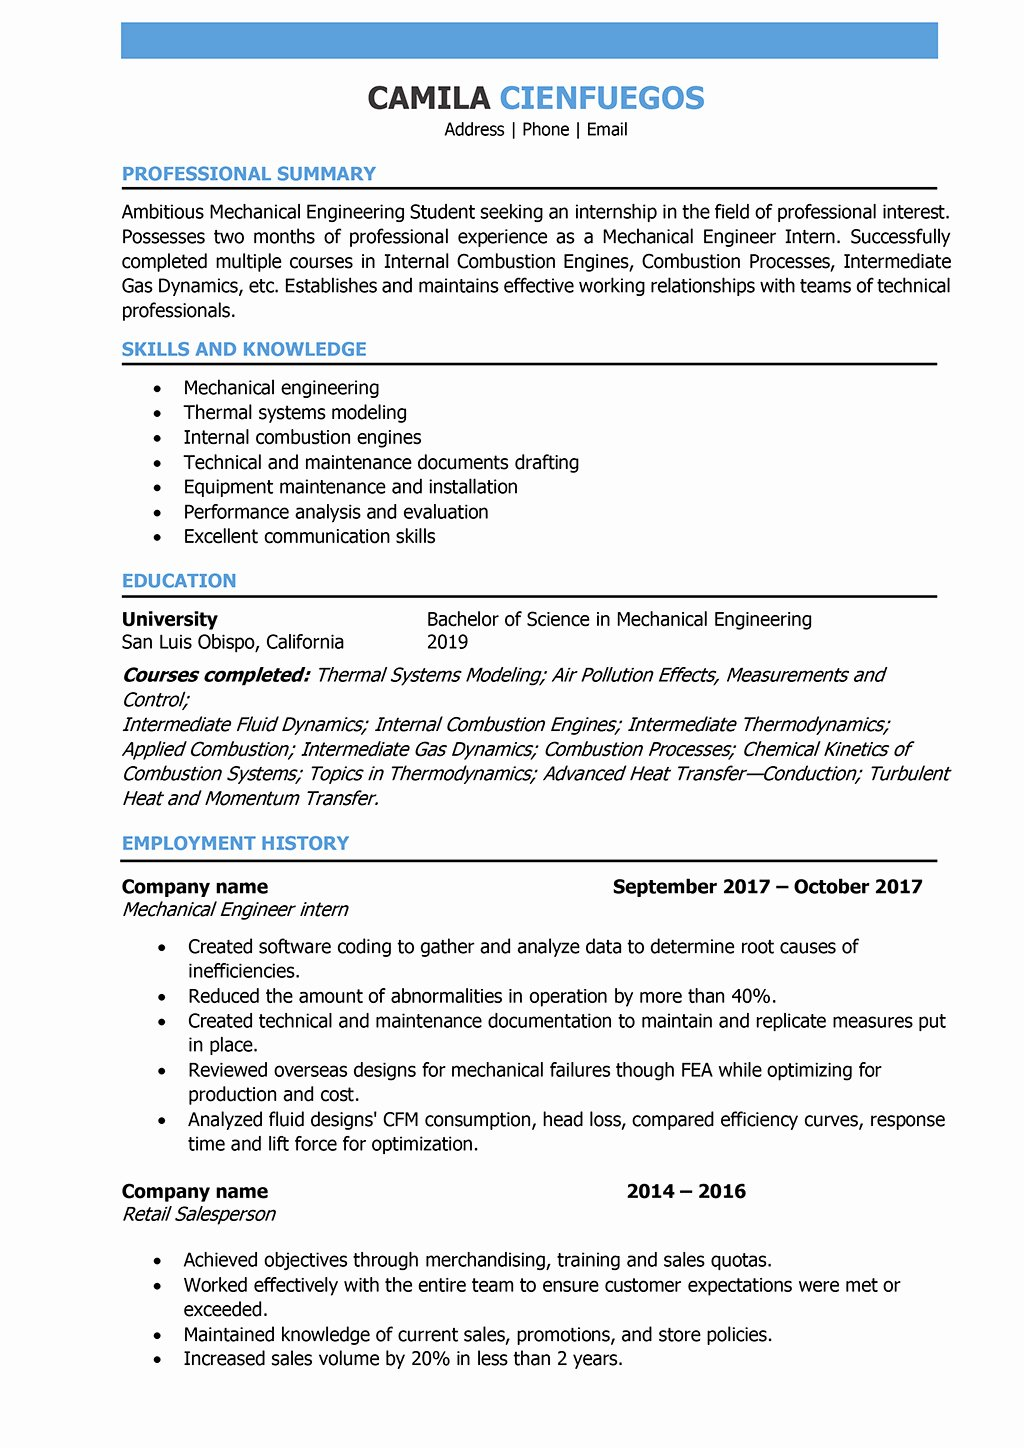 Mechanical Engineer Resume Sample Best Of Mechanical Engineer Resume Samples and Writing Guide